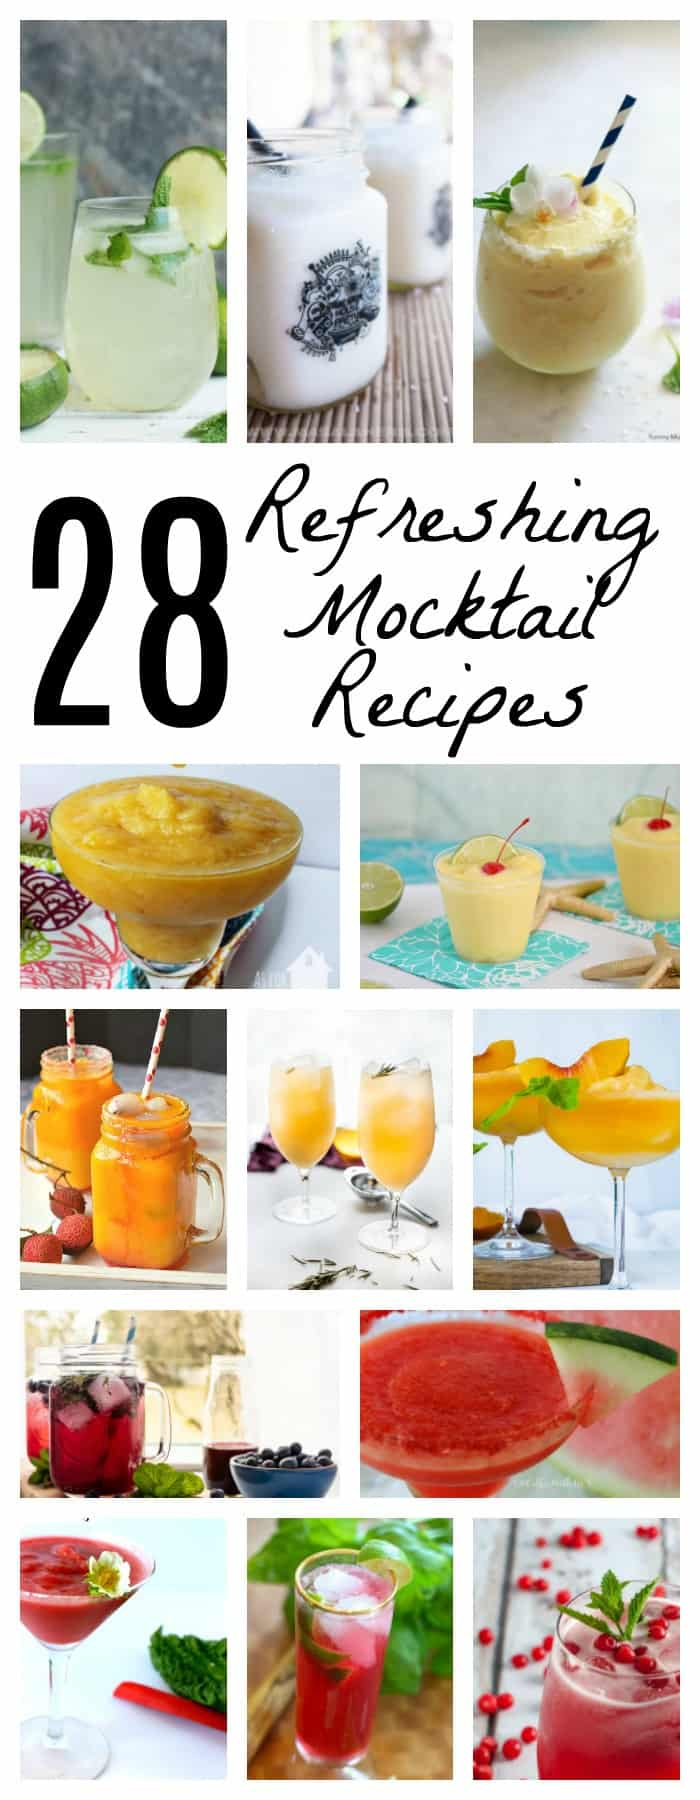 28 Refreshing Summery Mocktail Recipes that the whole family can enjoy!